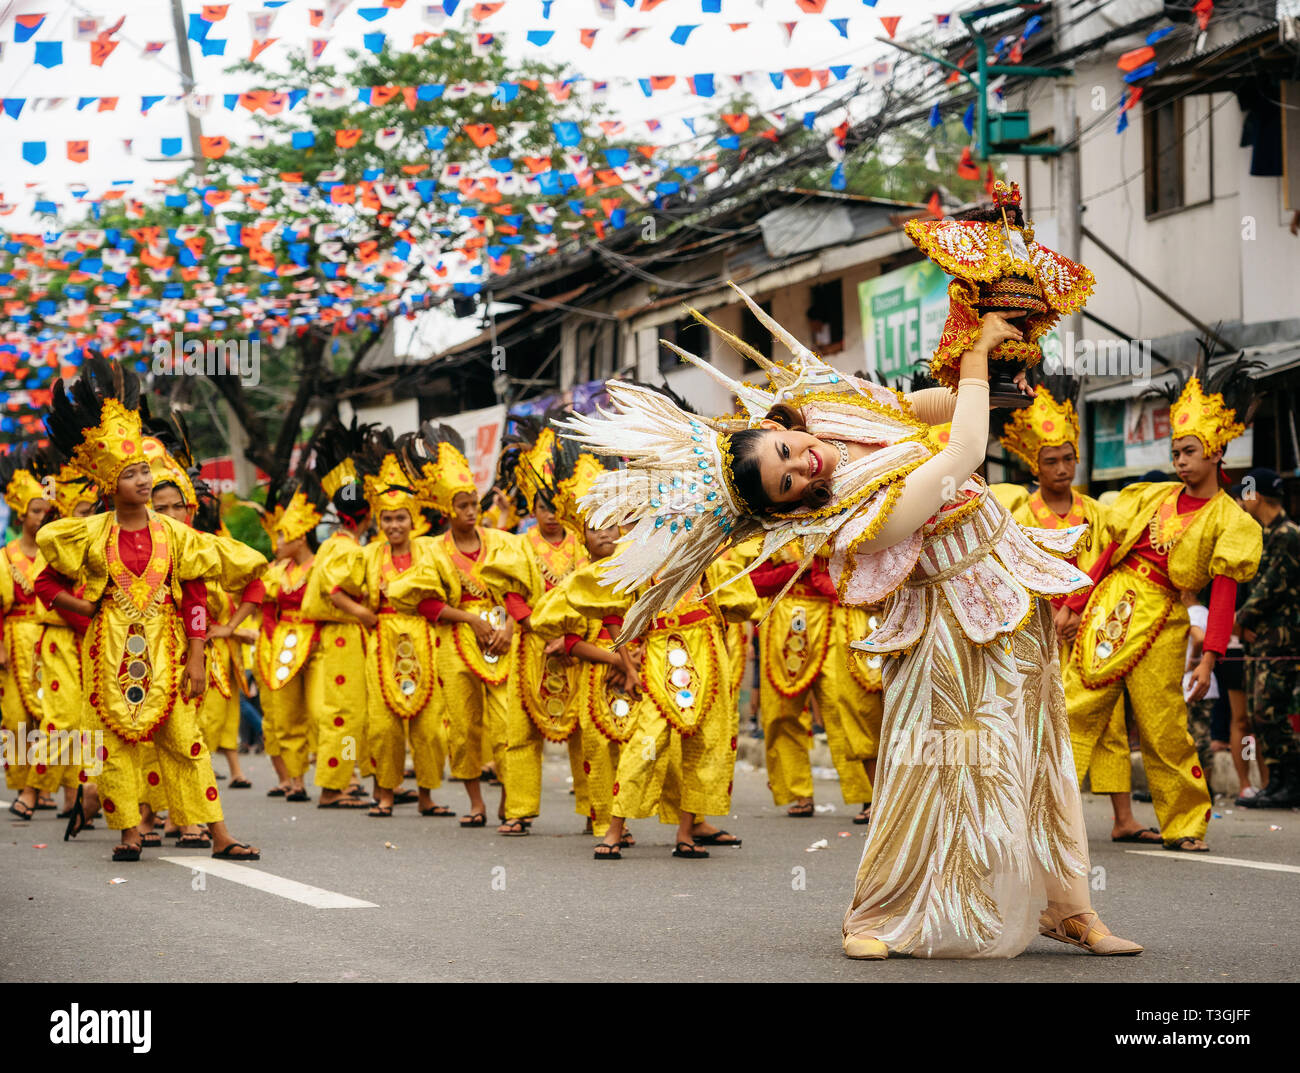 Cebu City , The Philippines - January 20, 2019: Street dancers in vivid colorful costumes participate in the parade at the Sinulog Festival. - Stock Image